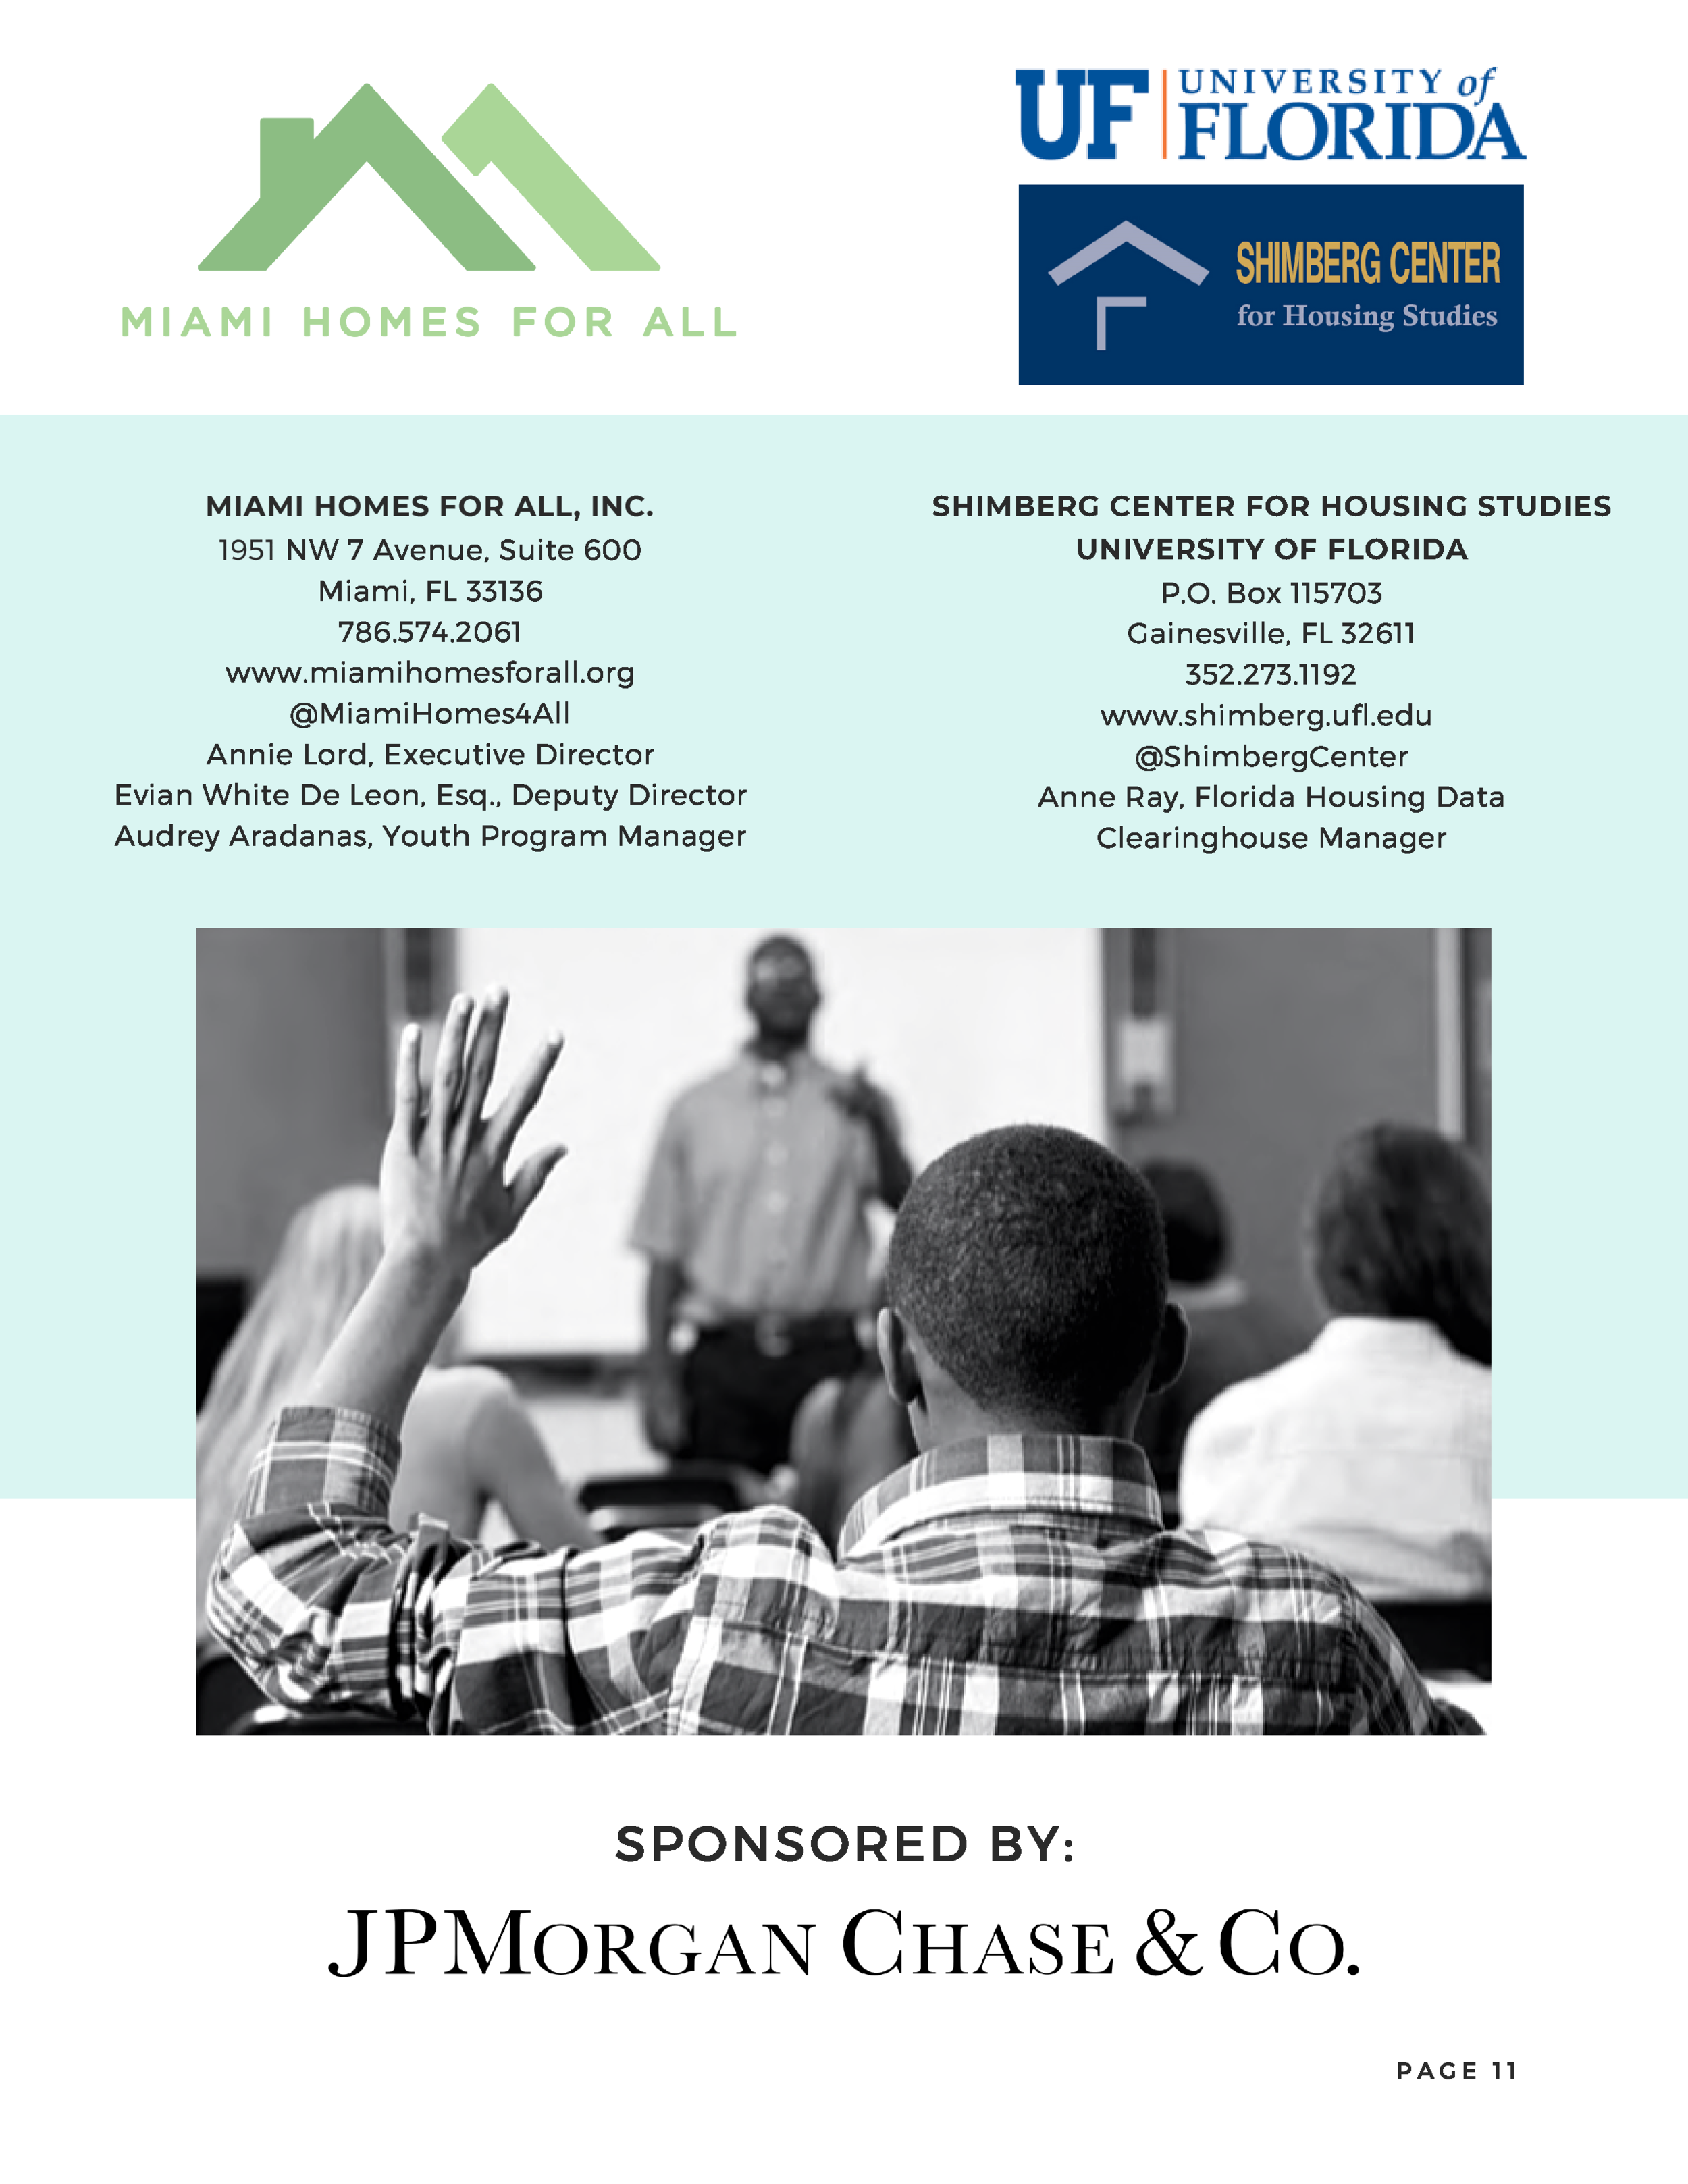 Students Experiencing Homelessness in Florida - Updates and Solutions - August 2019-12.png